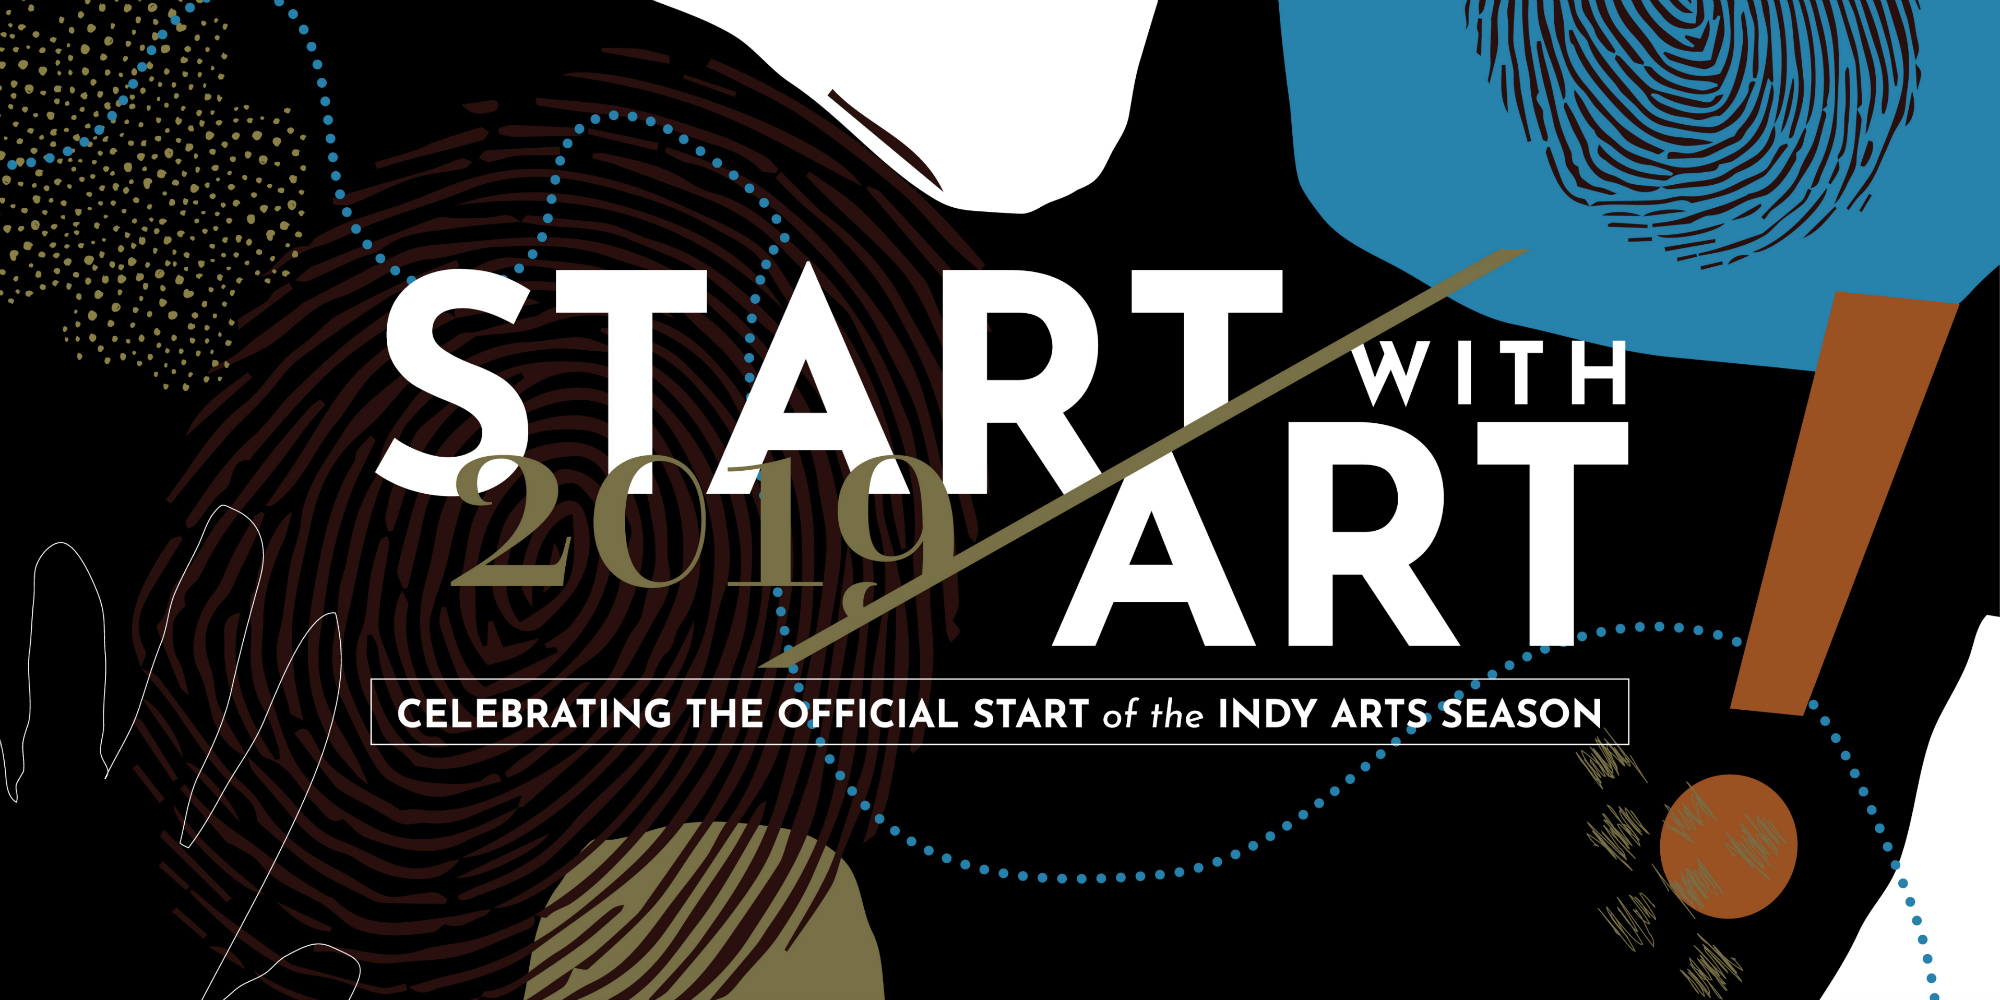 Start with Art | Arts Council of Indianapolis